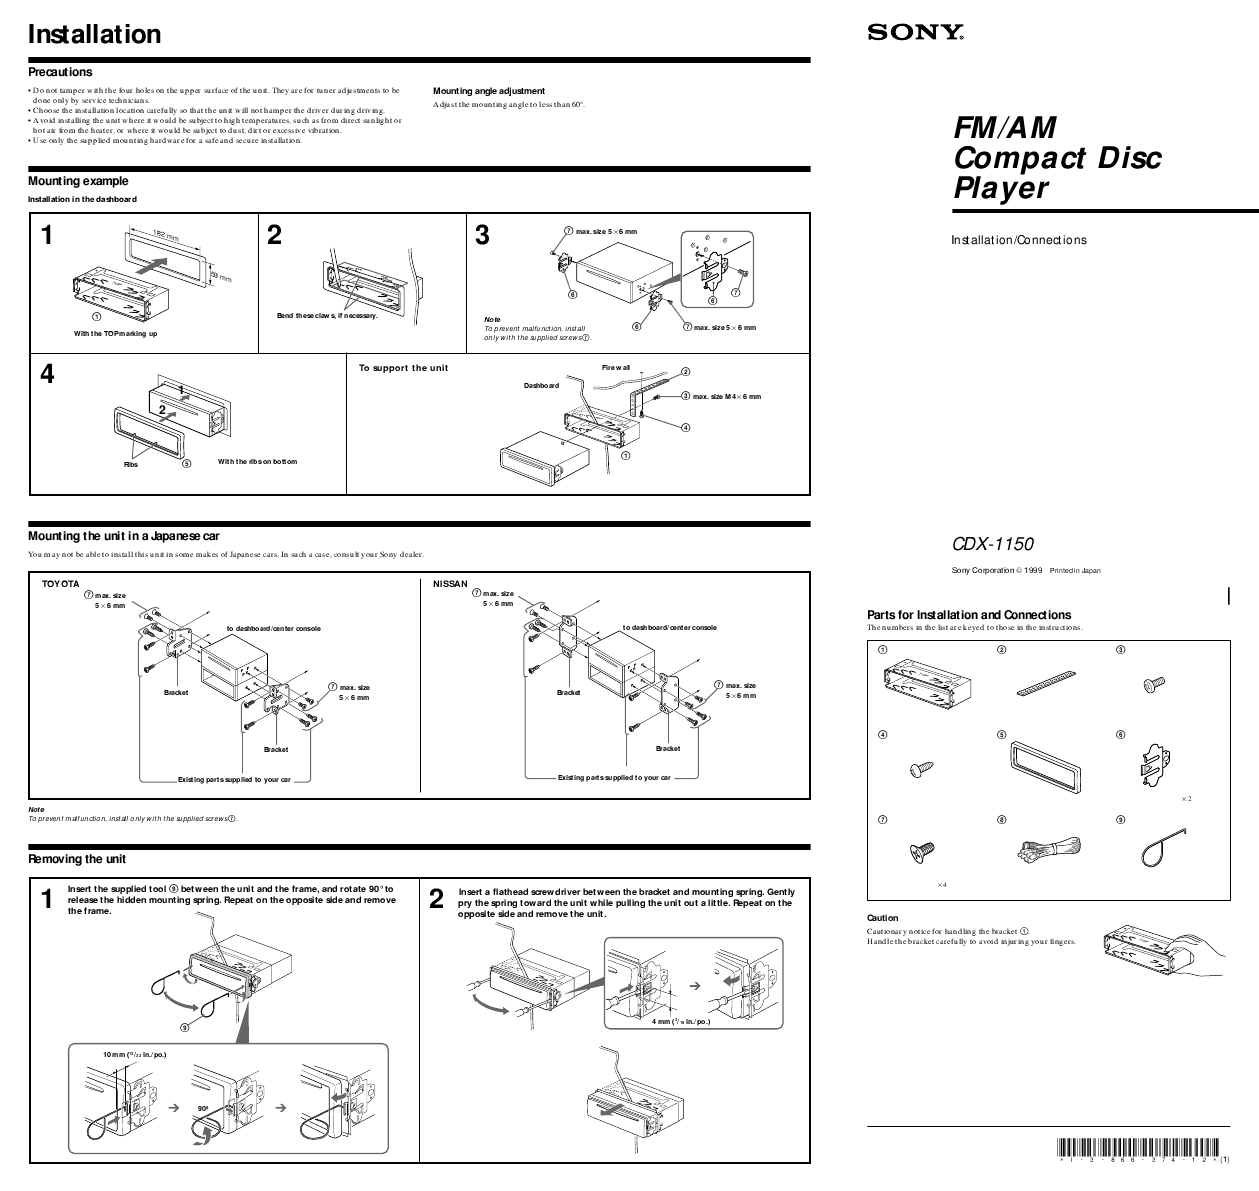 for cd player wiring diagram for automotive wiring diagrams f232104f 70da 49cc 9610 ff637e39a318 000001